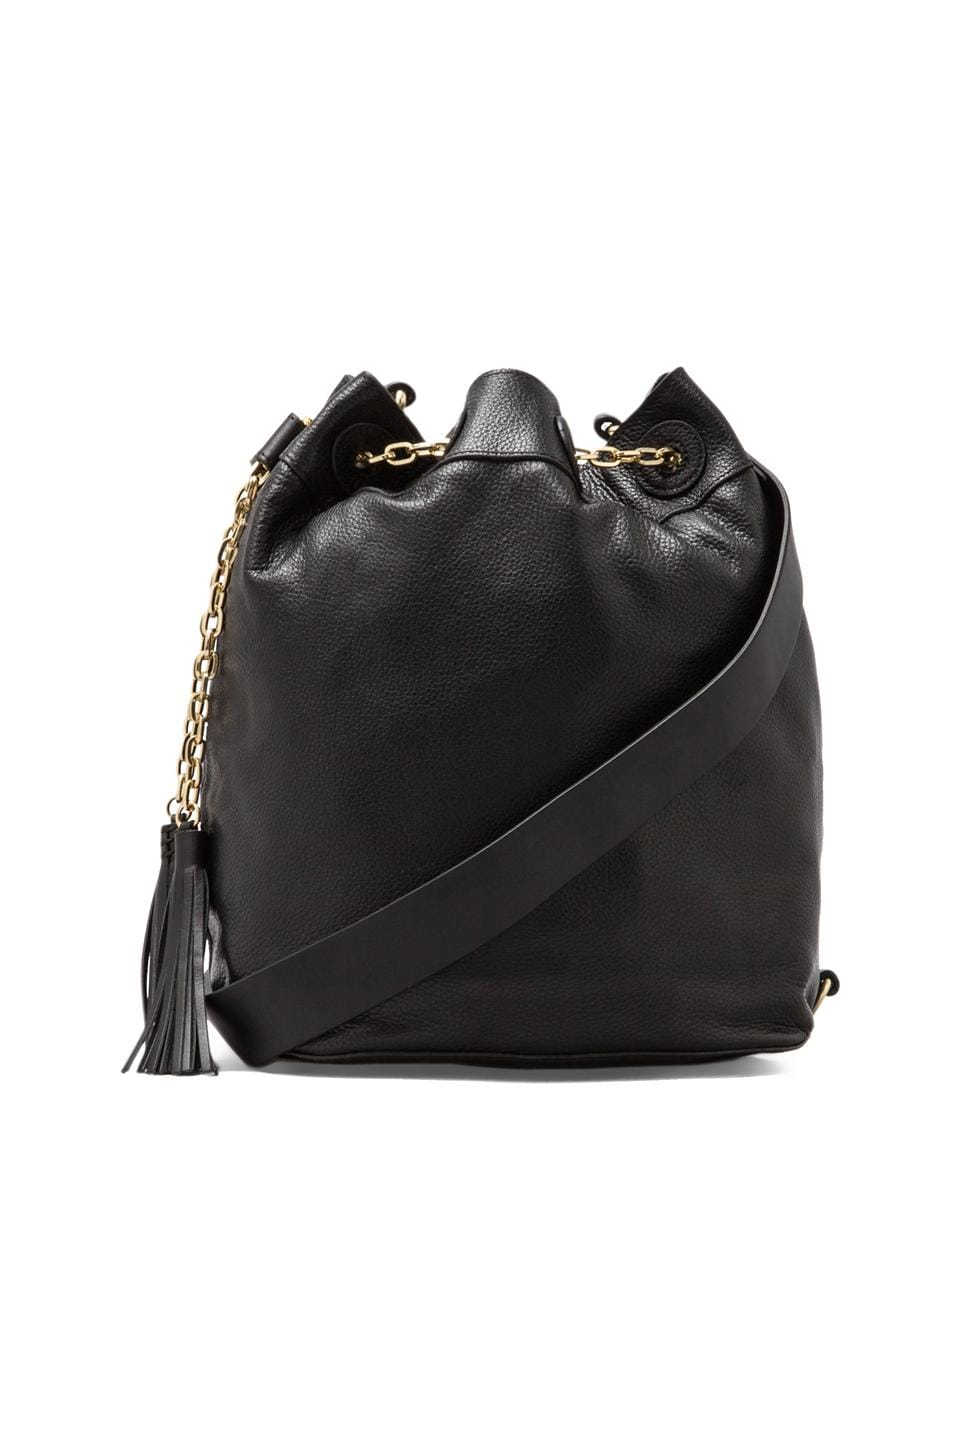 Foley + Corinna Convertible Sling in Black